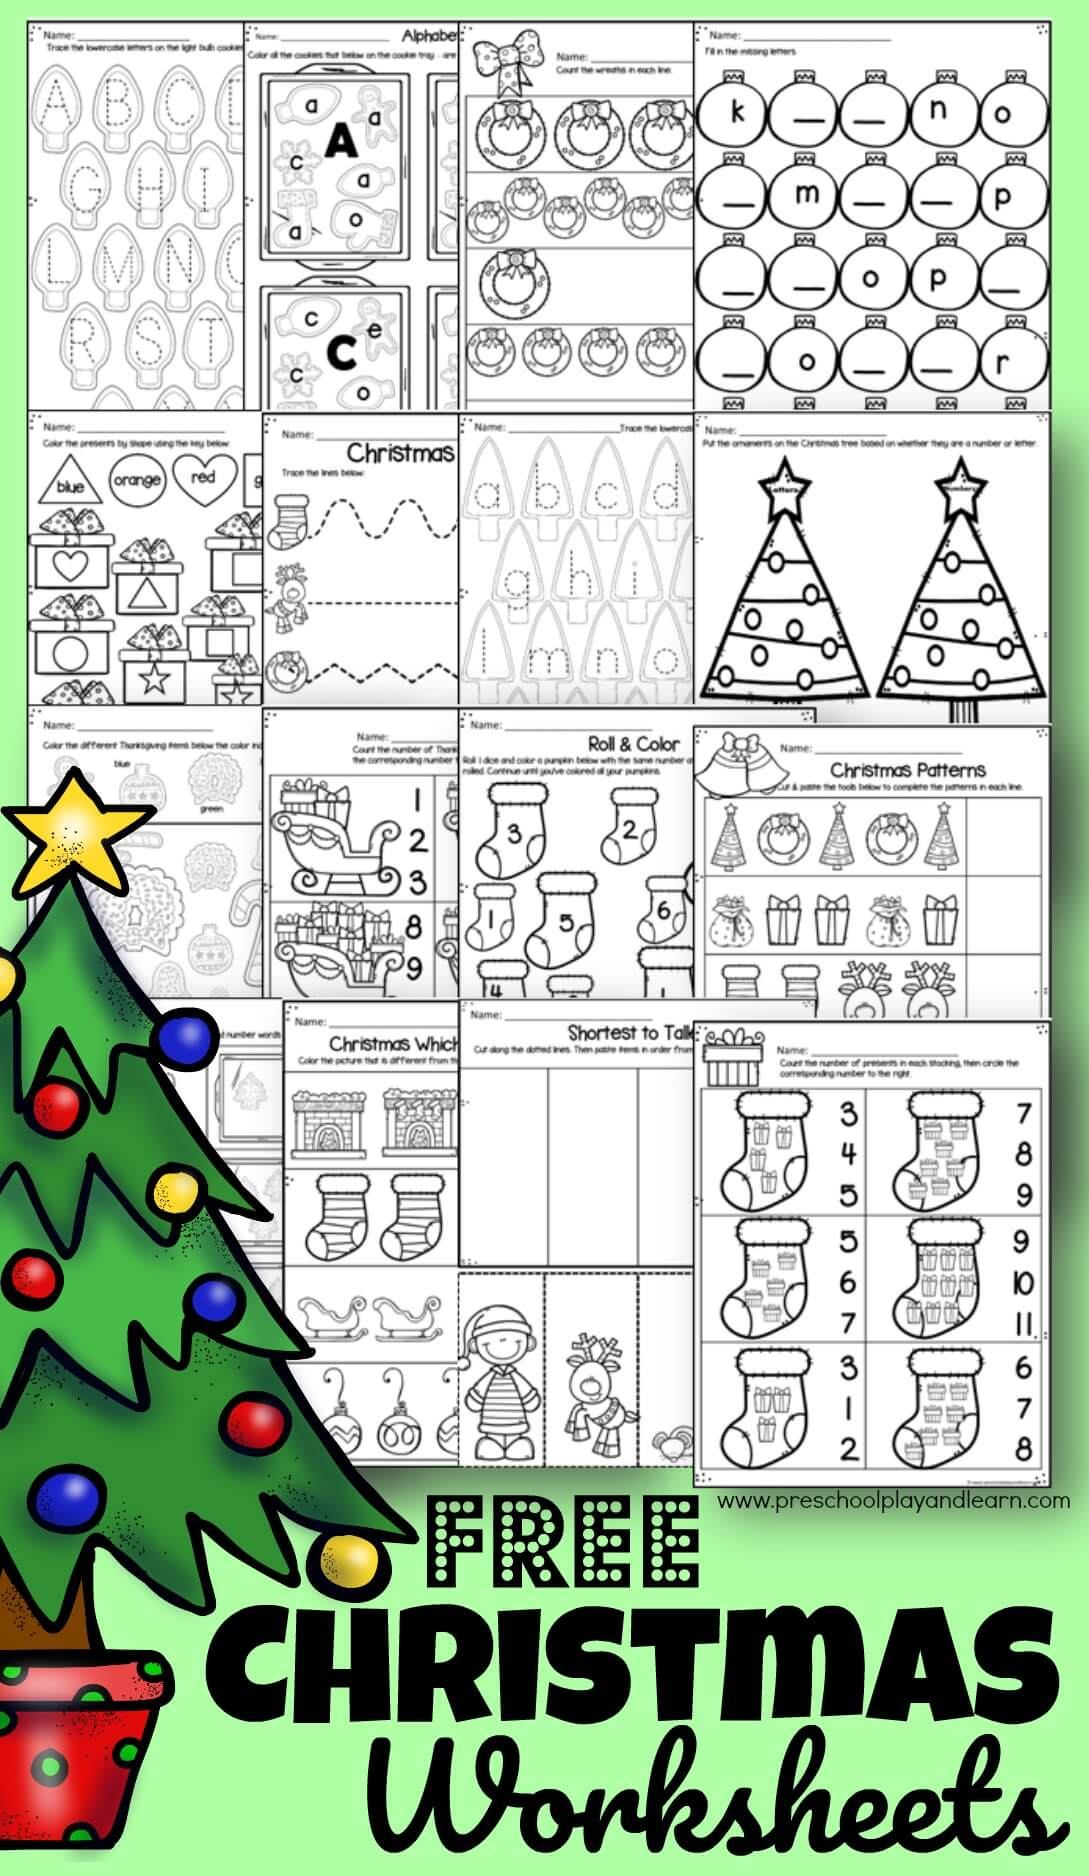 Free Christmas Worksheets For Preschoolers